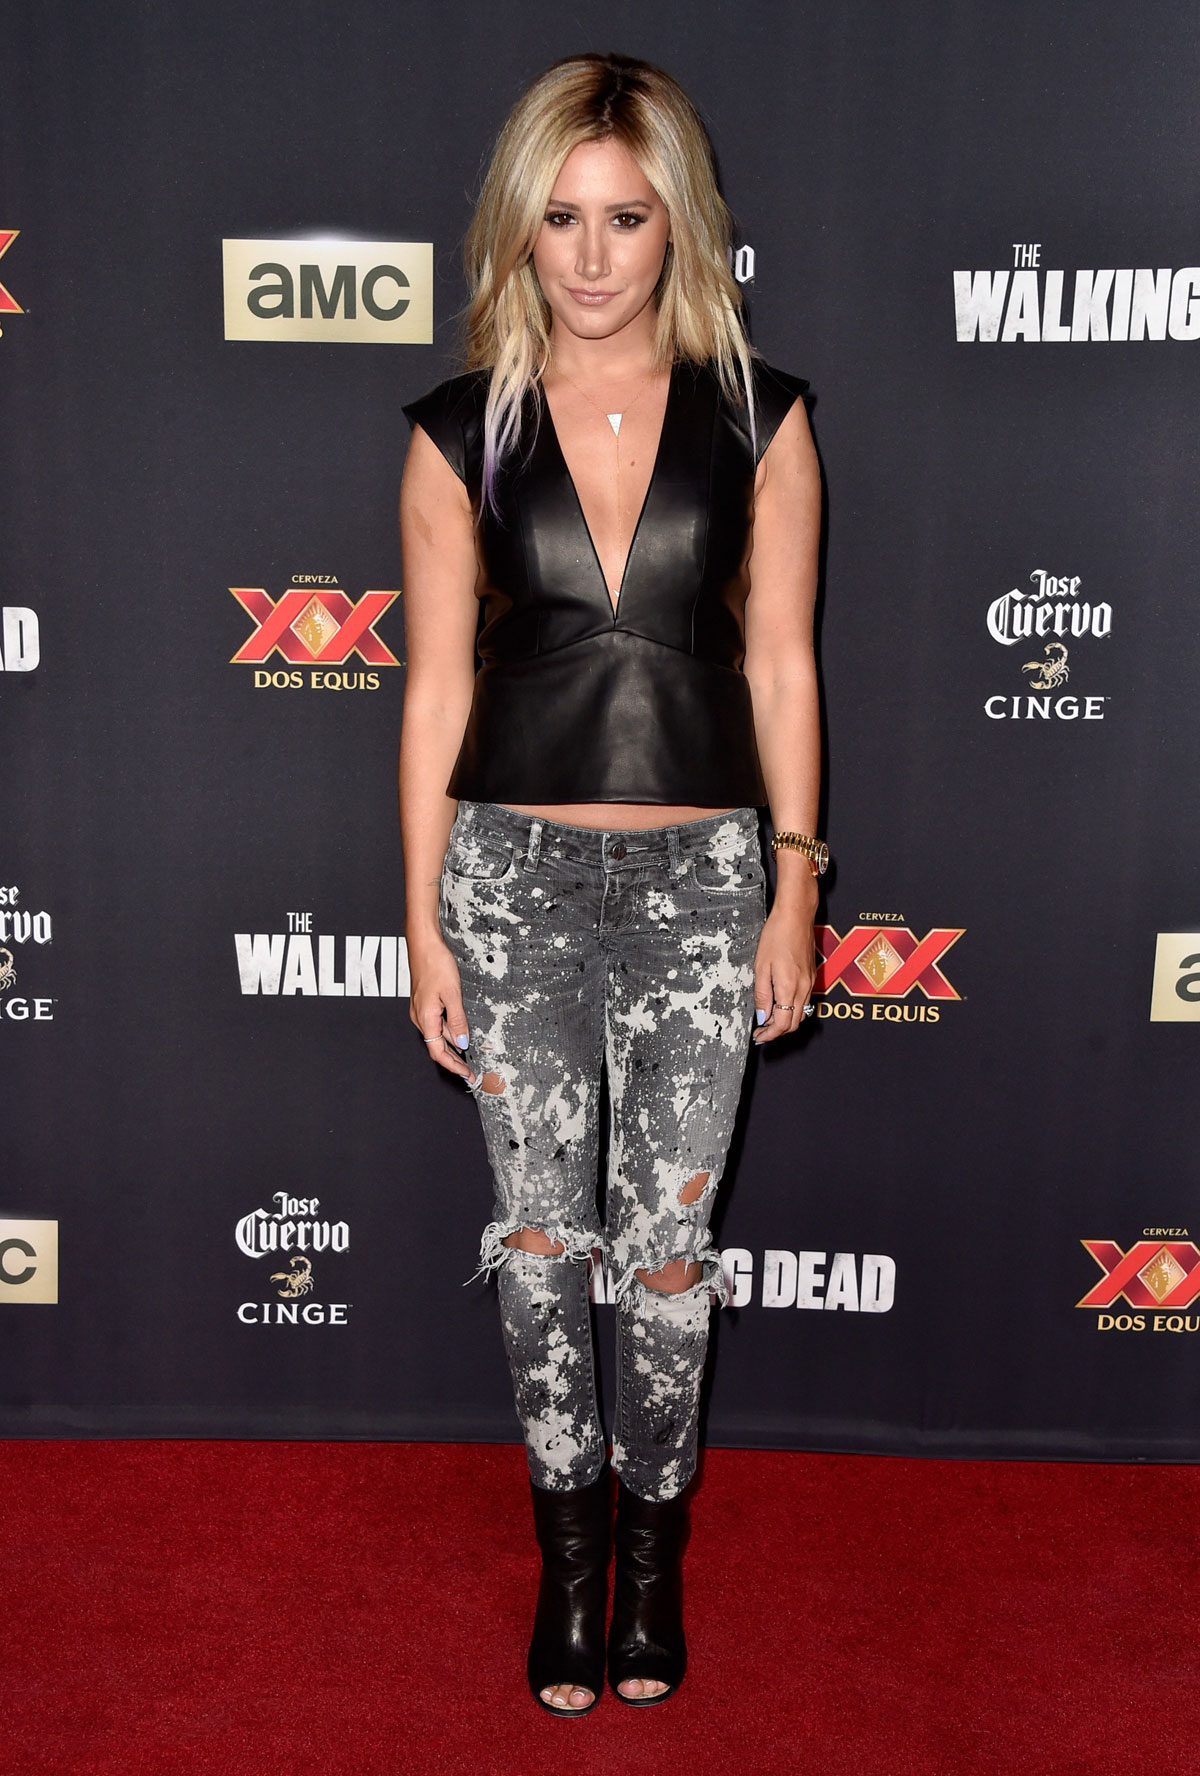 Ashley Tisdale Attneds The Walking Dead Season 5 Premiere